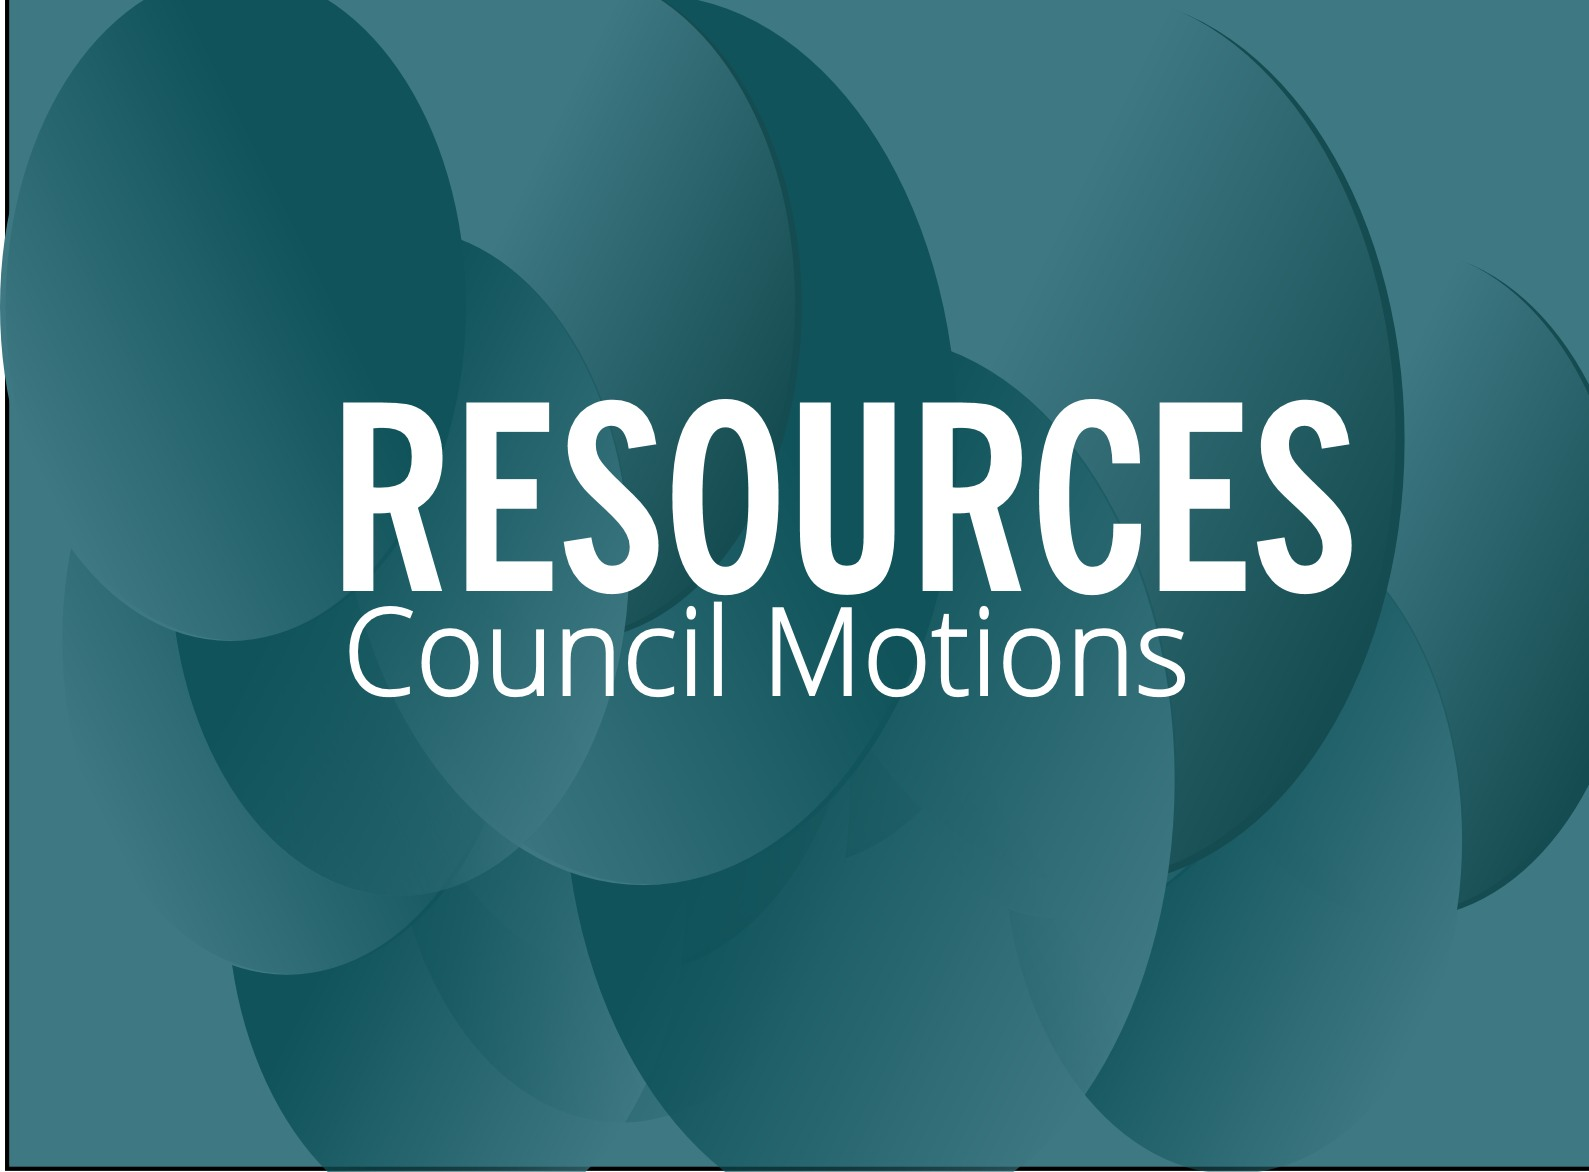 RESOURCES: Example council motions